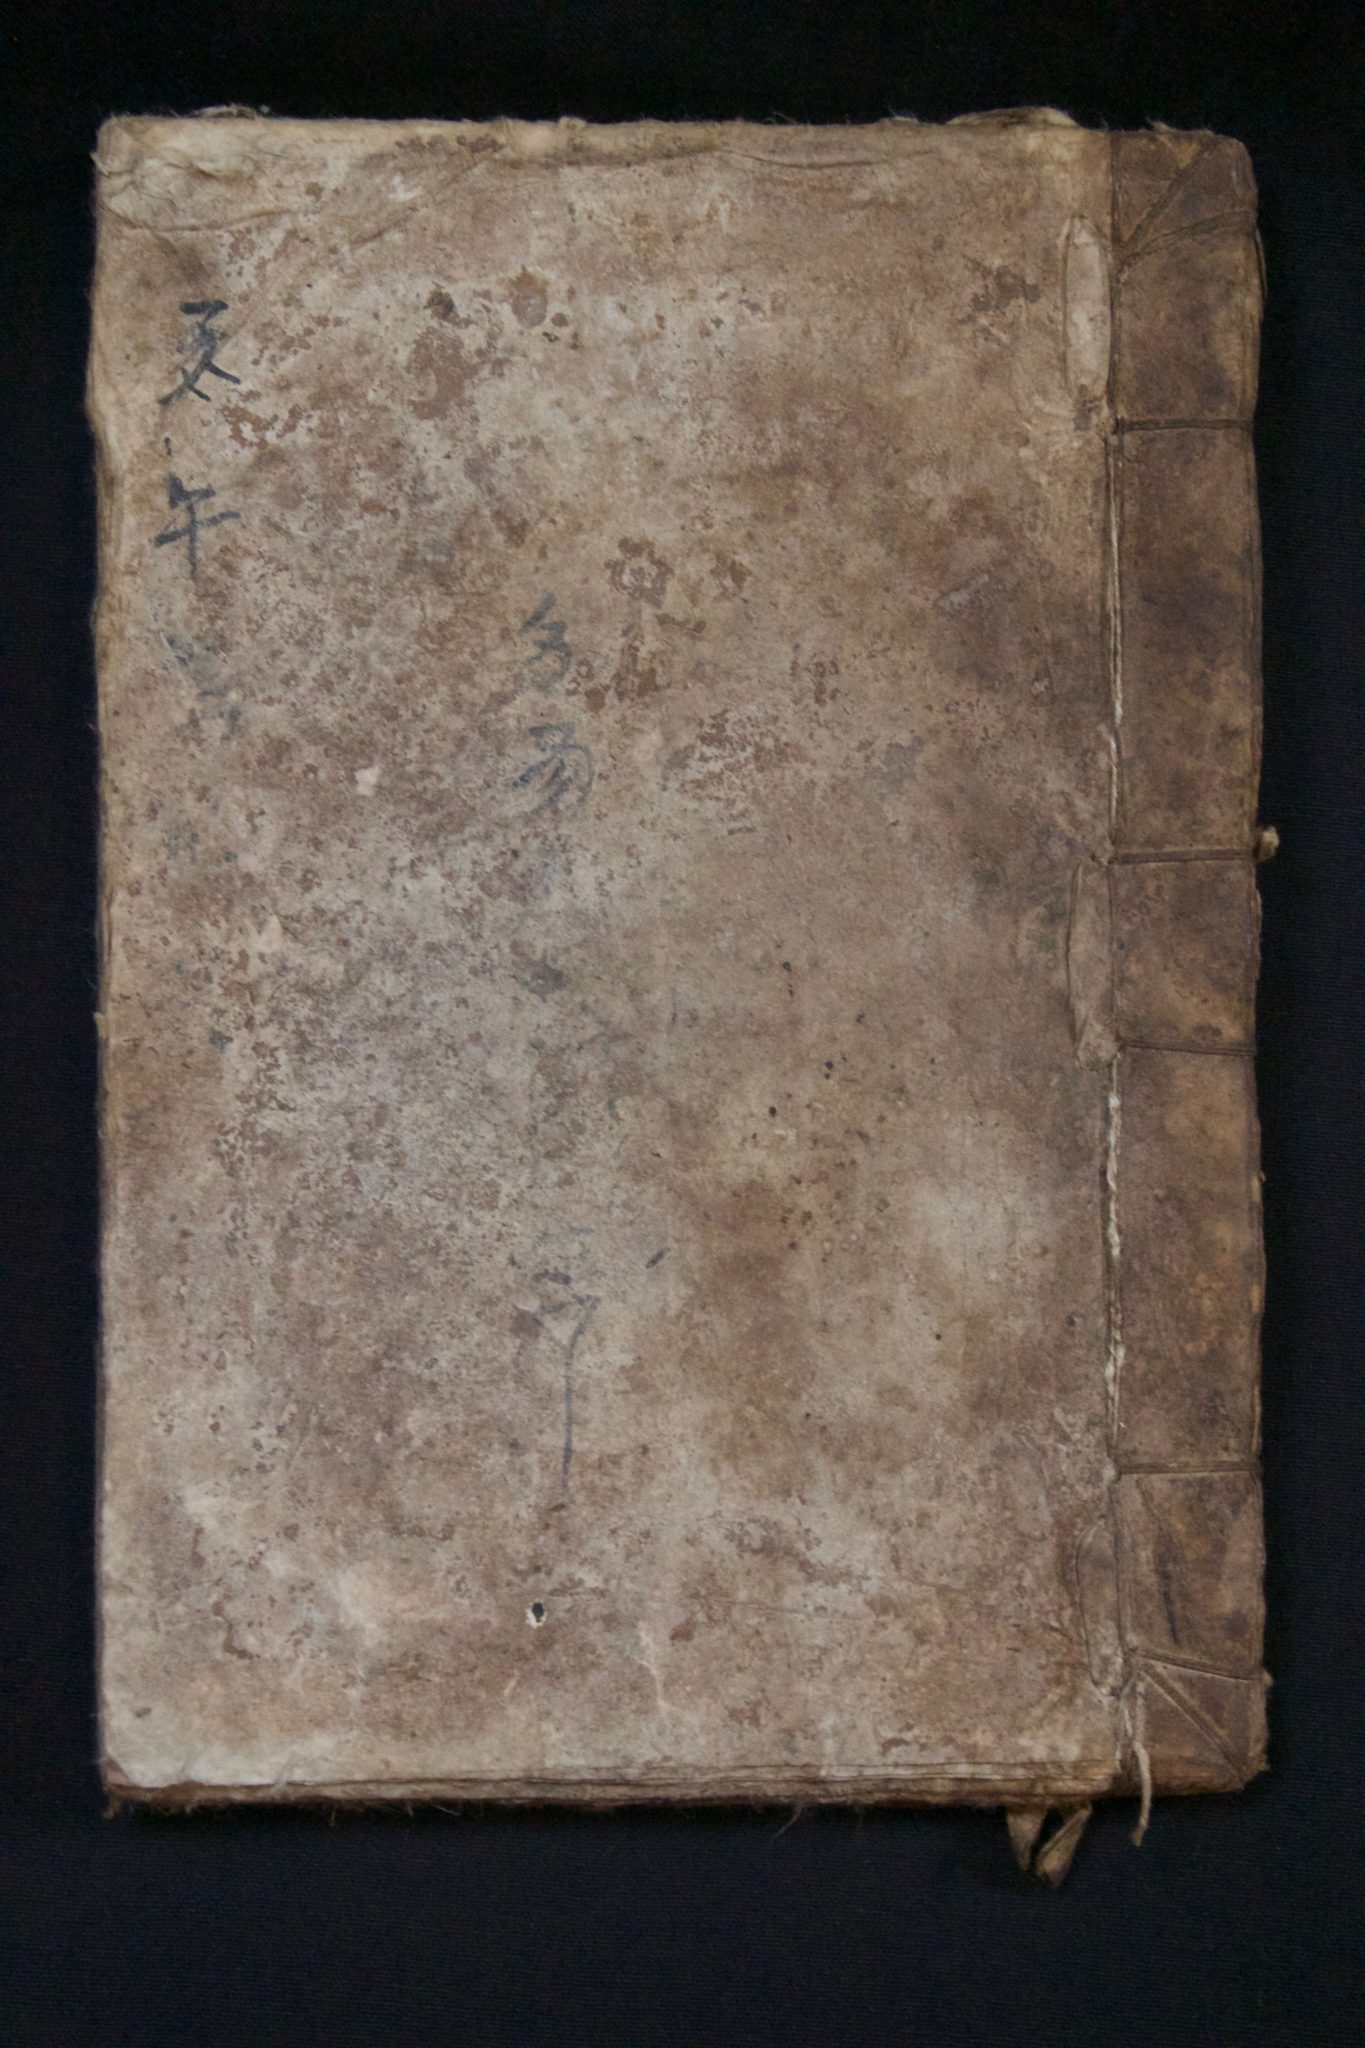 """Shaman's Personal Instructional Book, China, Yunnan Shui people, Early 20th c, Paper, ink, pigment, Scripted by the shaman, on handmade paper, to record all his knowledge and to instruct future shaman, 9"""" x 6 ¼"""" 1"""", $750."""